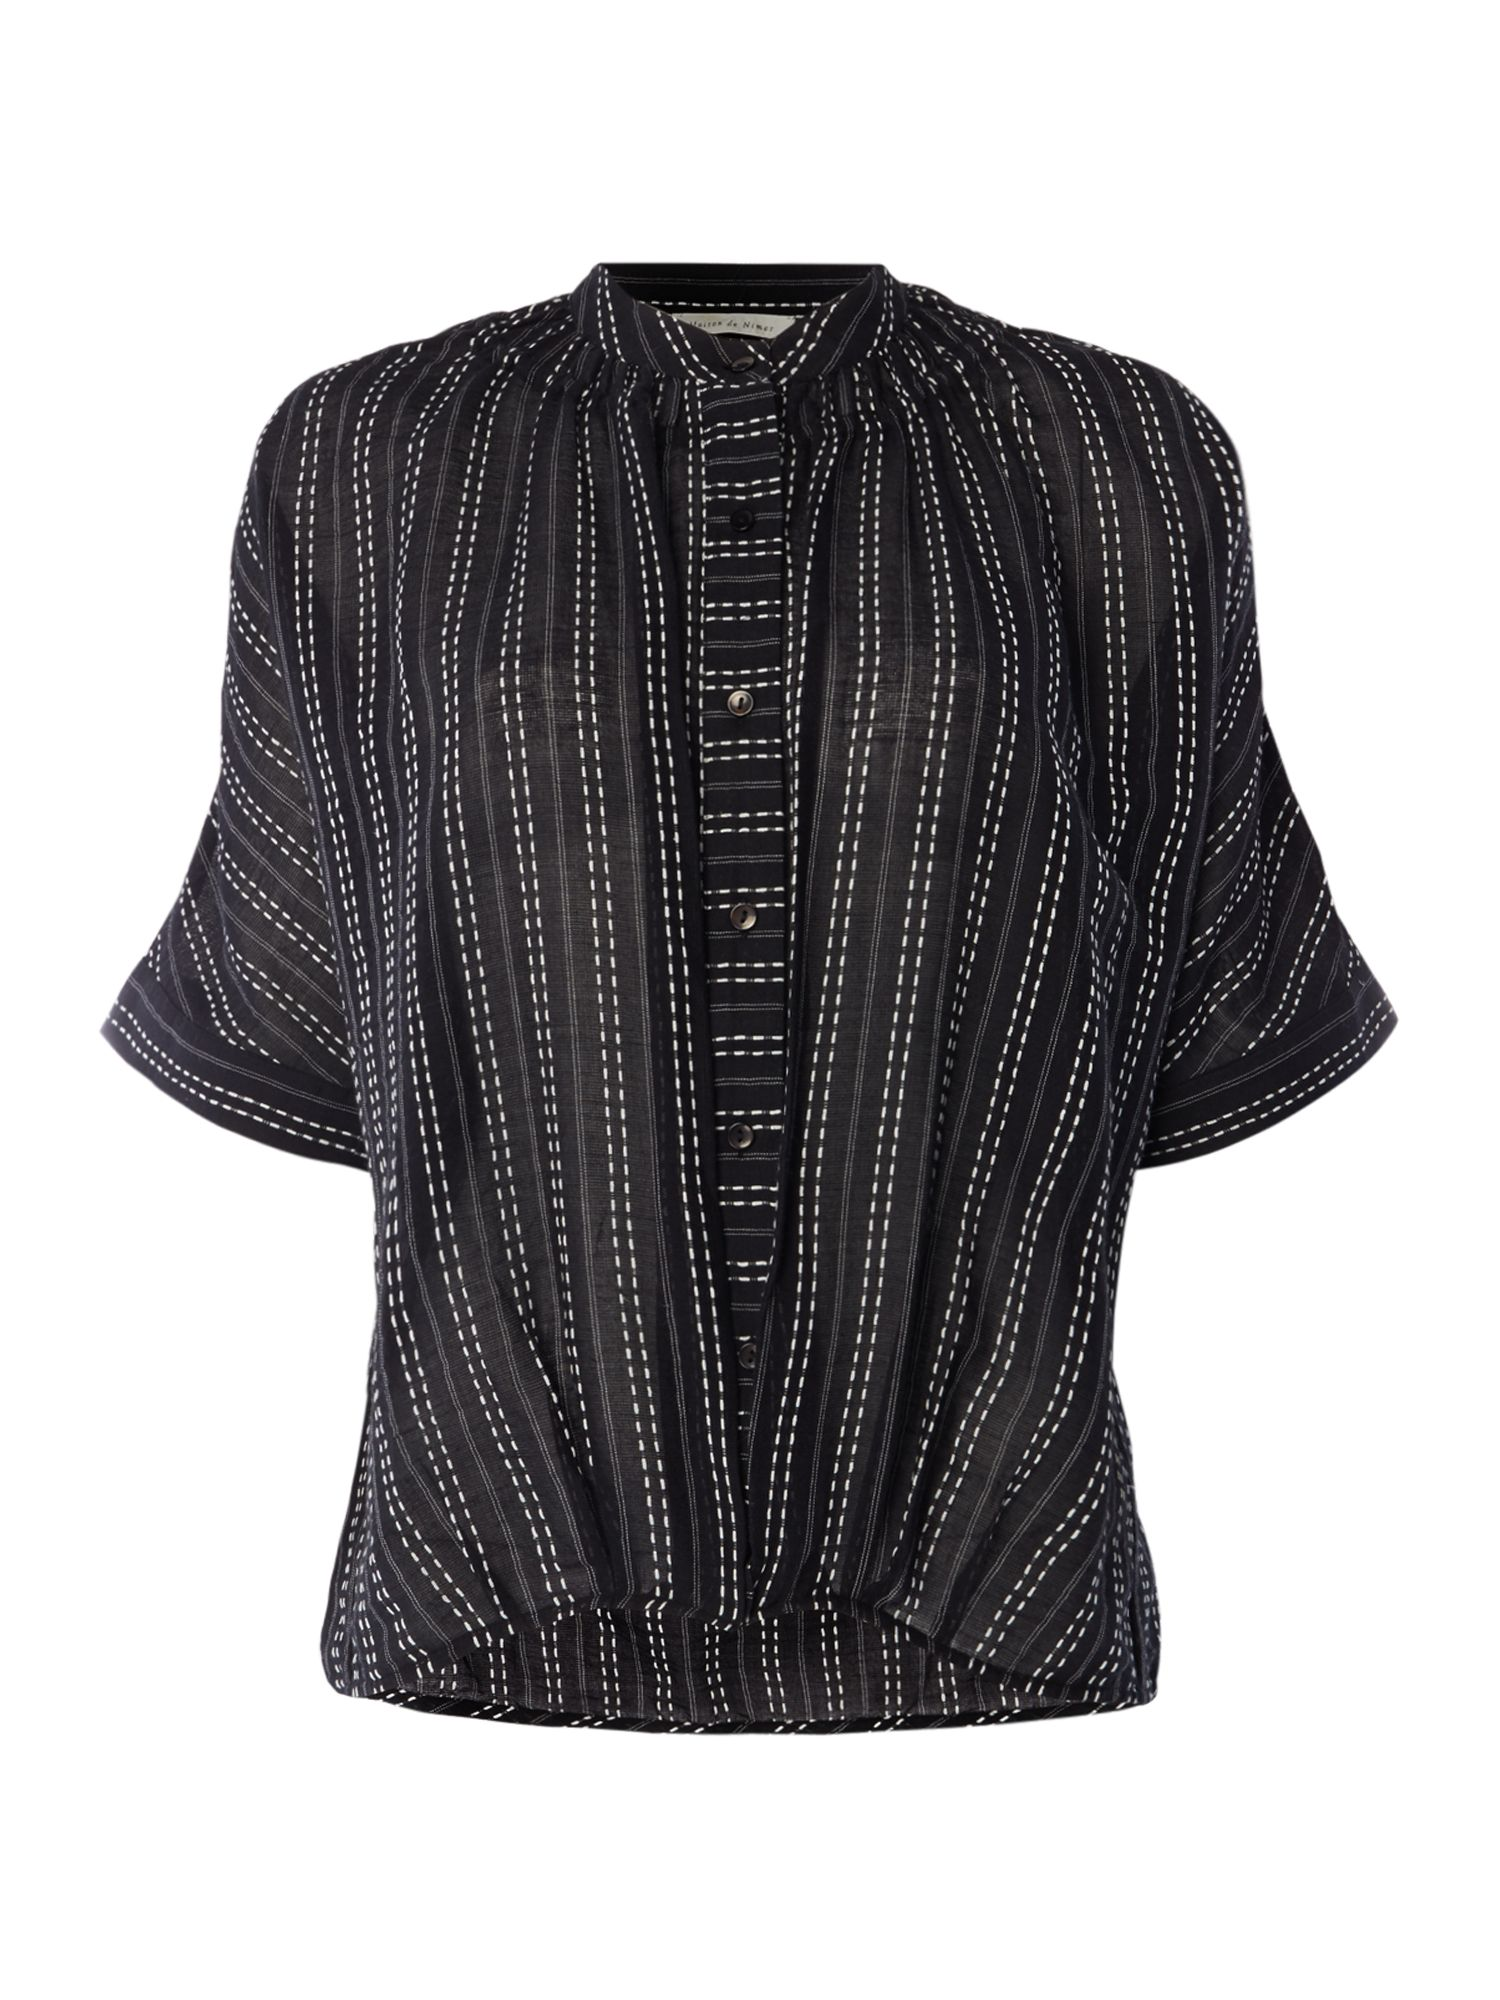 Maison De Nimes Stripe Embroidered Shirt, Black